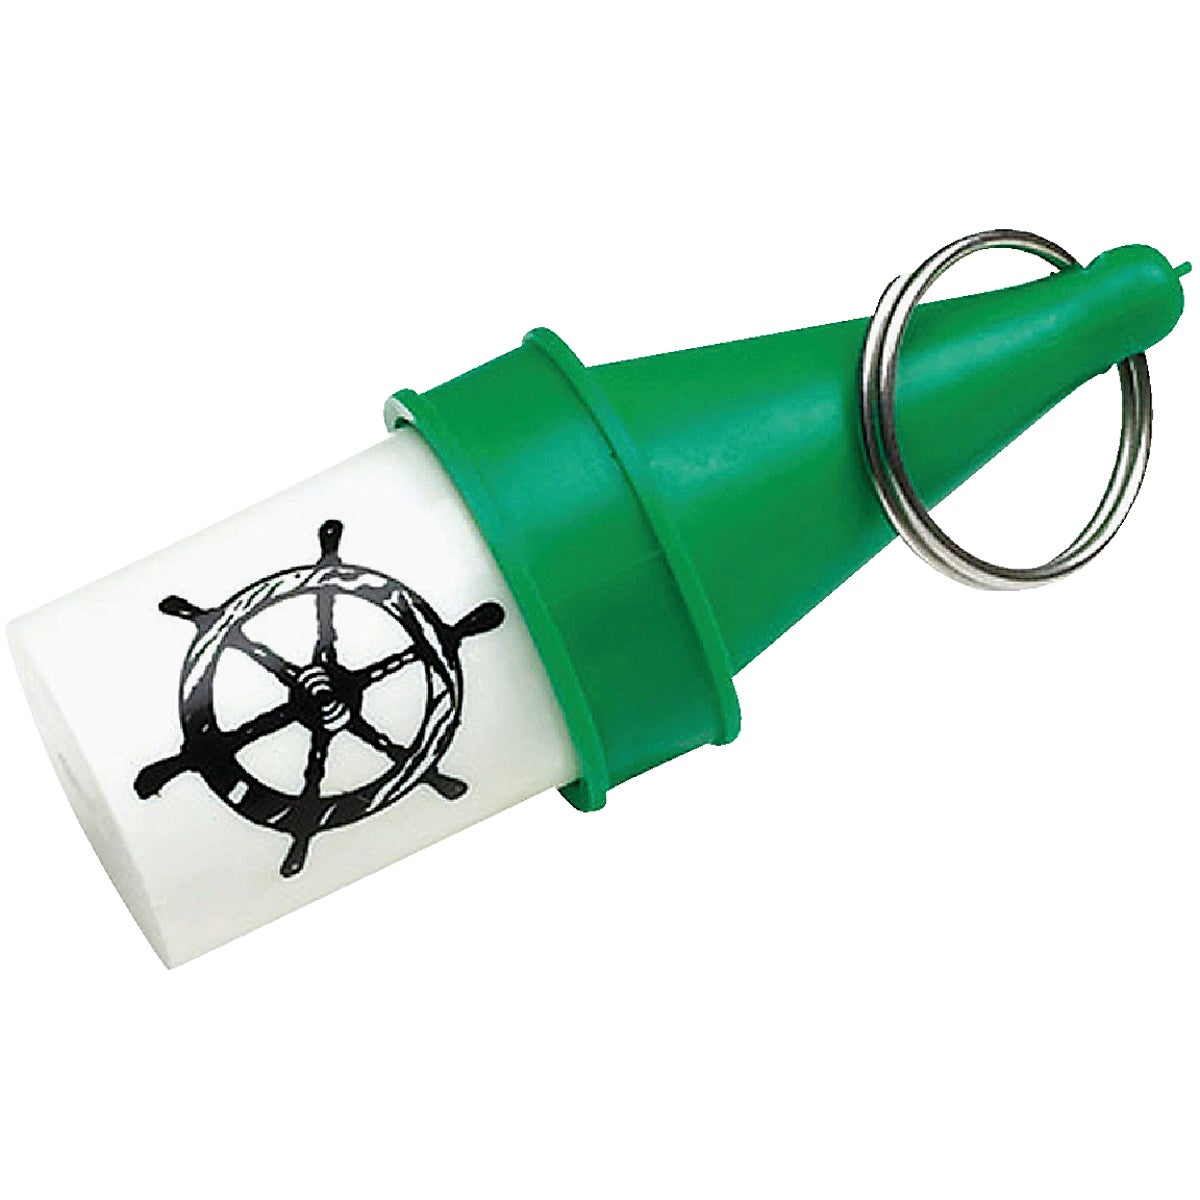 GREEN FLOATING KEY BUOY - 78091 by Seachoice Prod